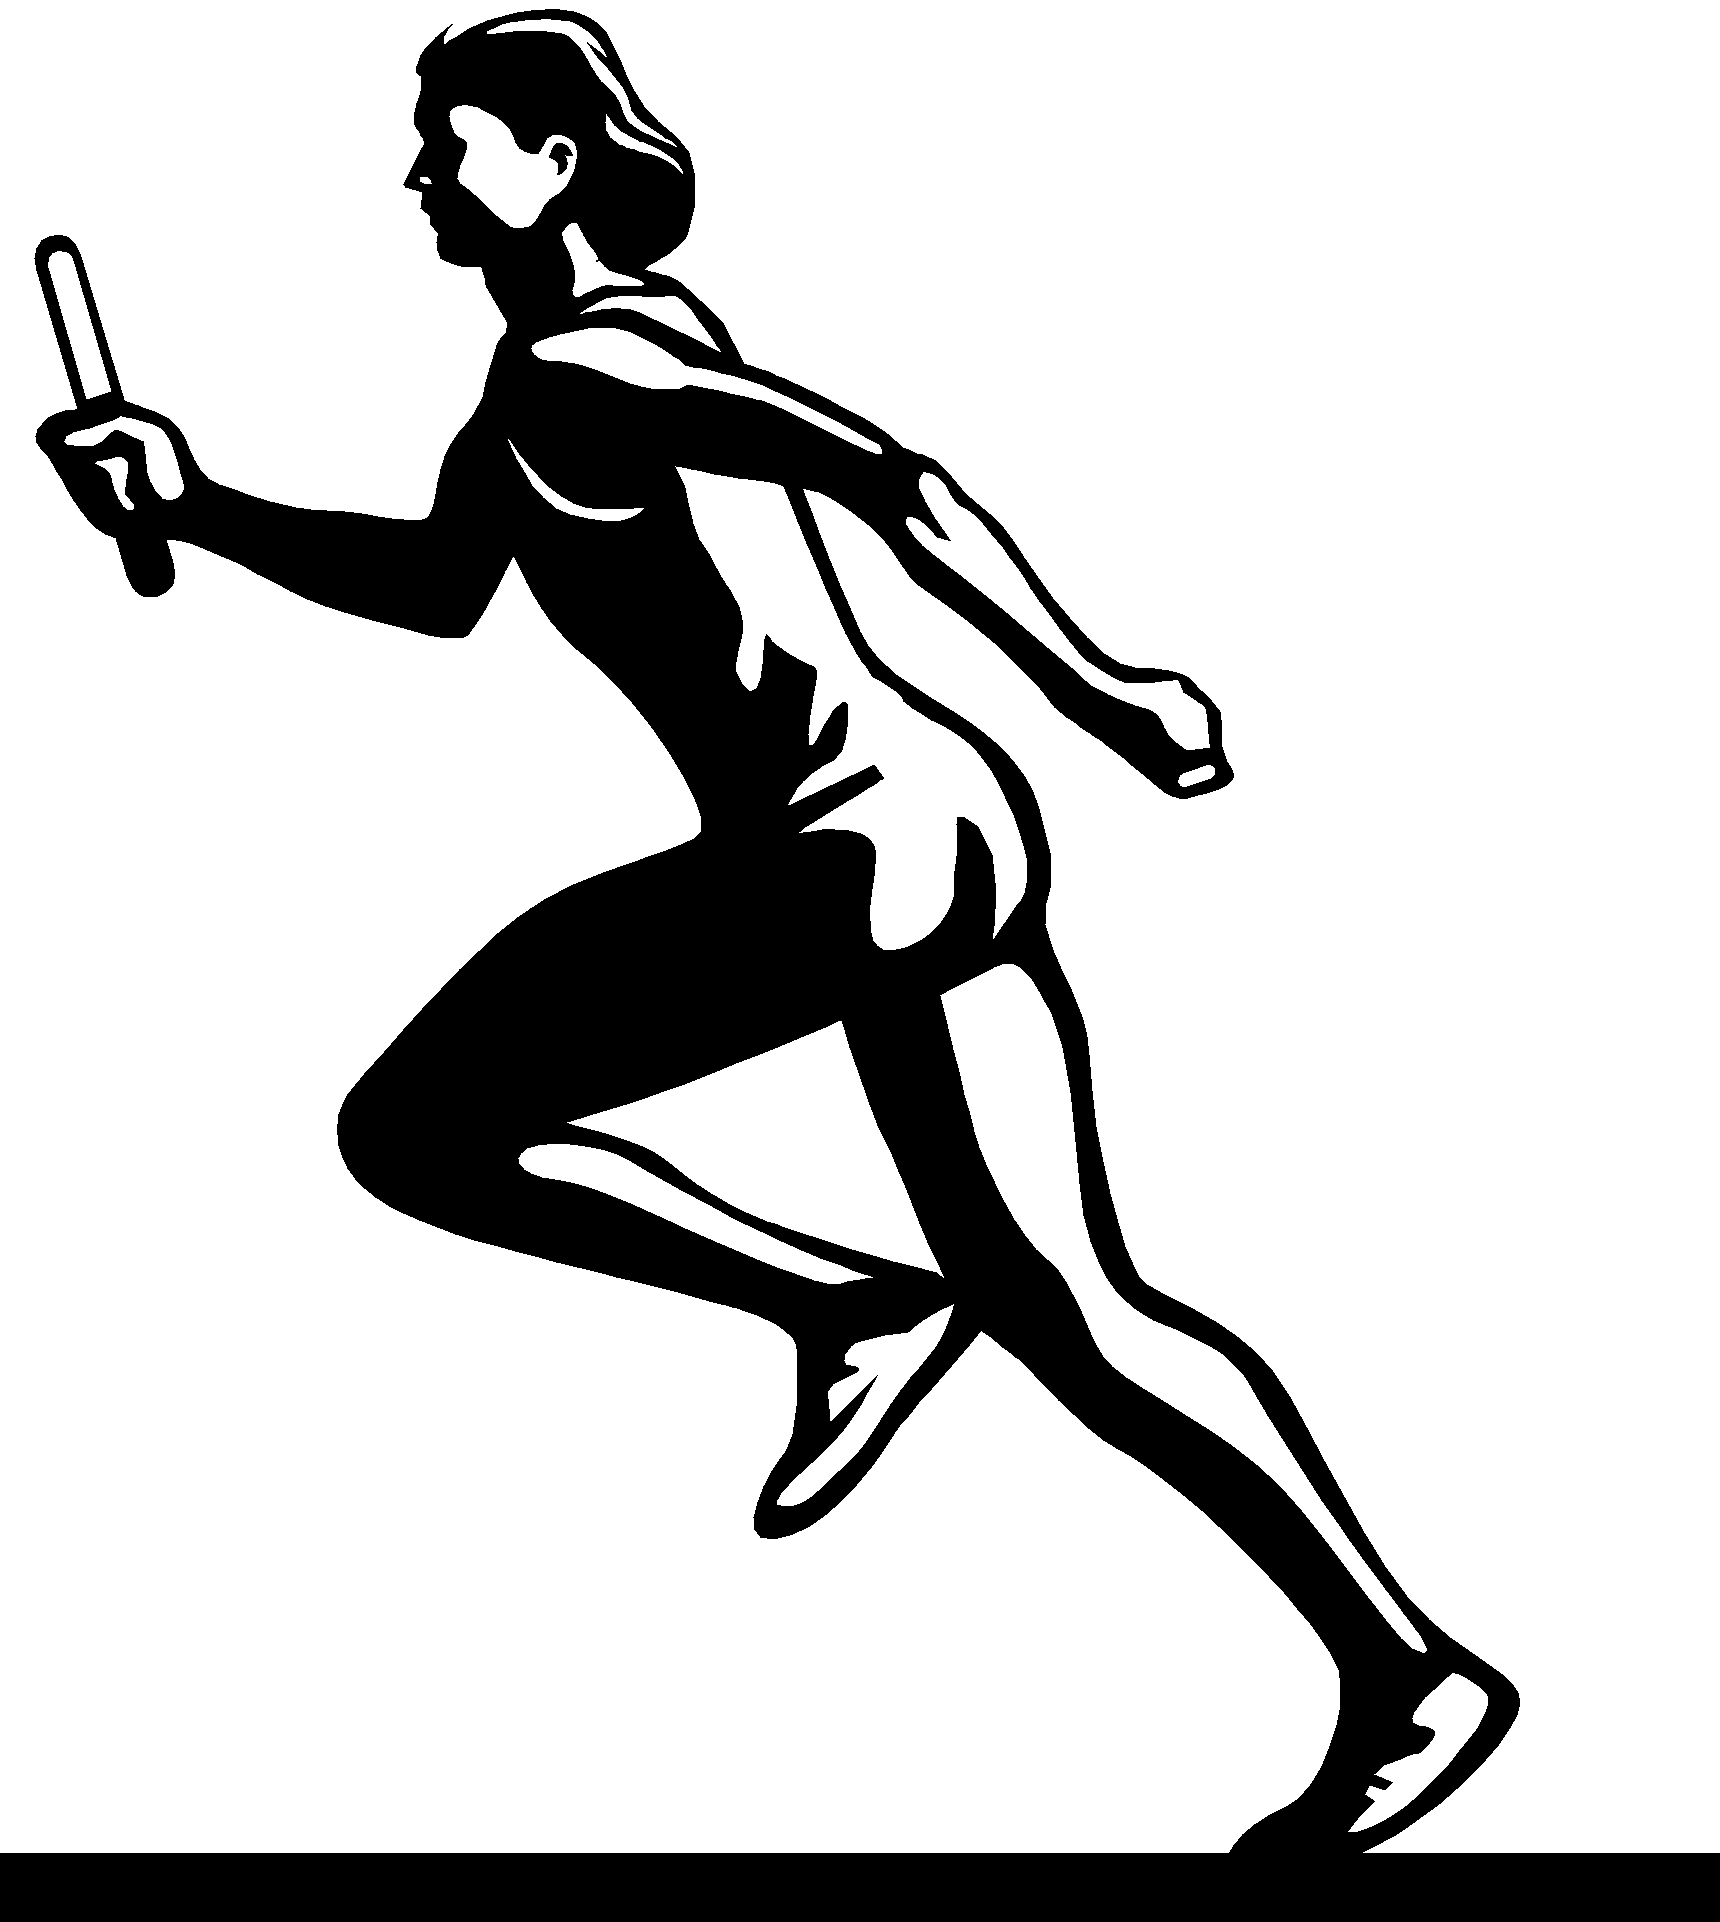 Track And Field Clip Art The Cliparts 2-Track and field clip art the cliparts 2-8